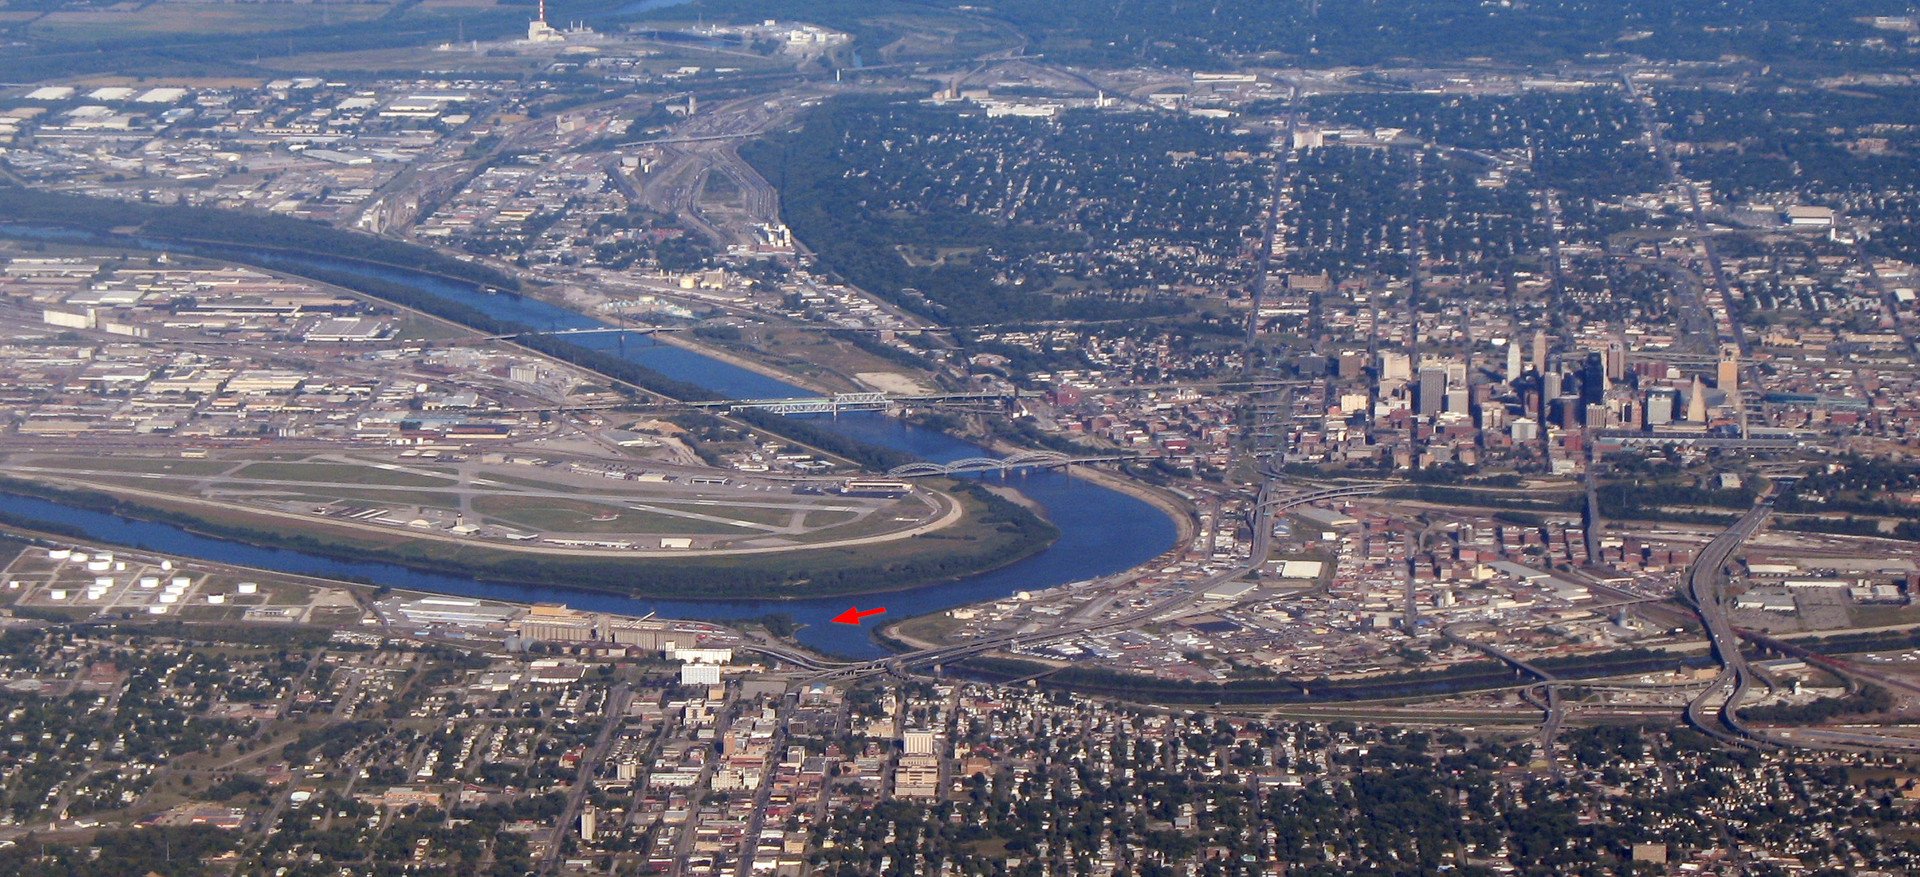 Kaw Point as seen from the air. Photo:  Americasroof, via Wikimedia Commons